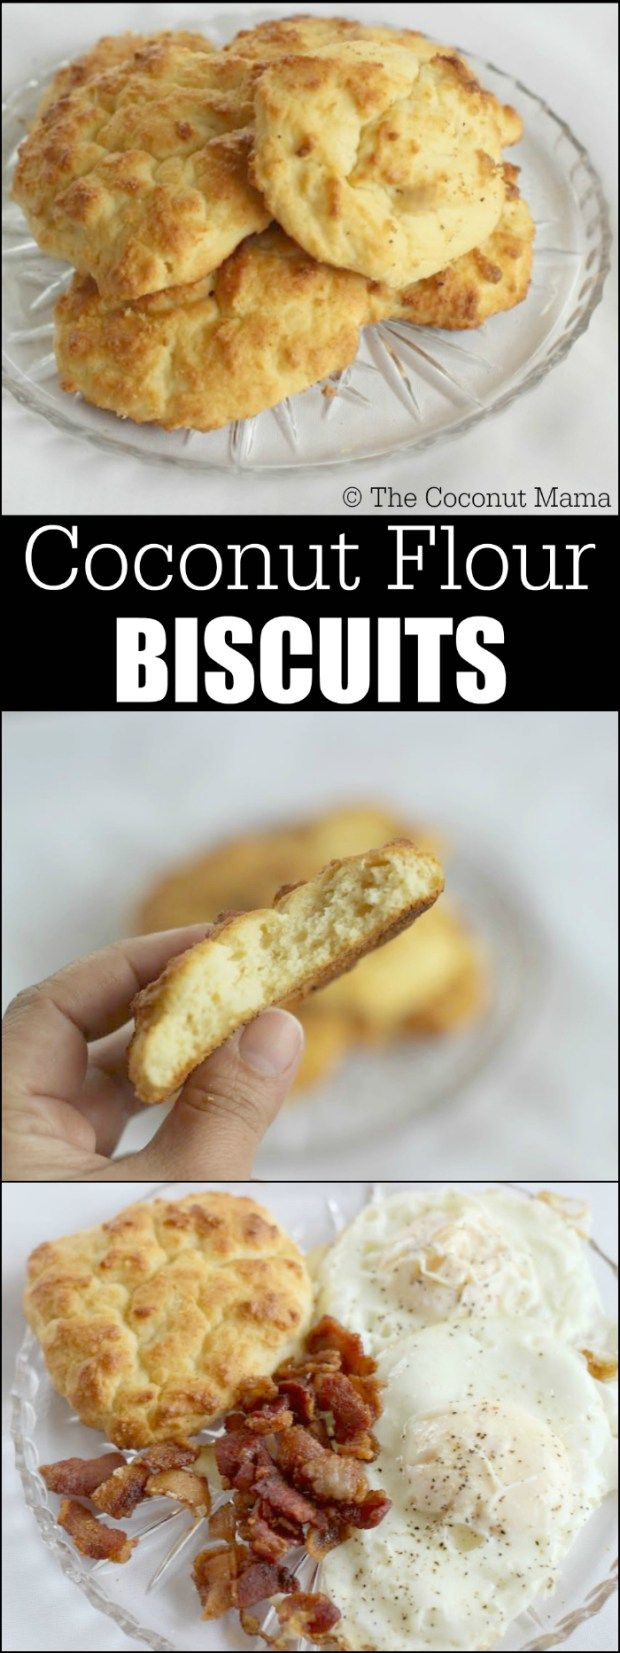 Low Carb and Gluten Free Coconut Flour Biscuits – The Coconut Mama